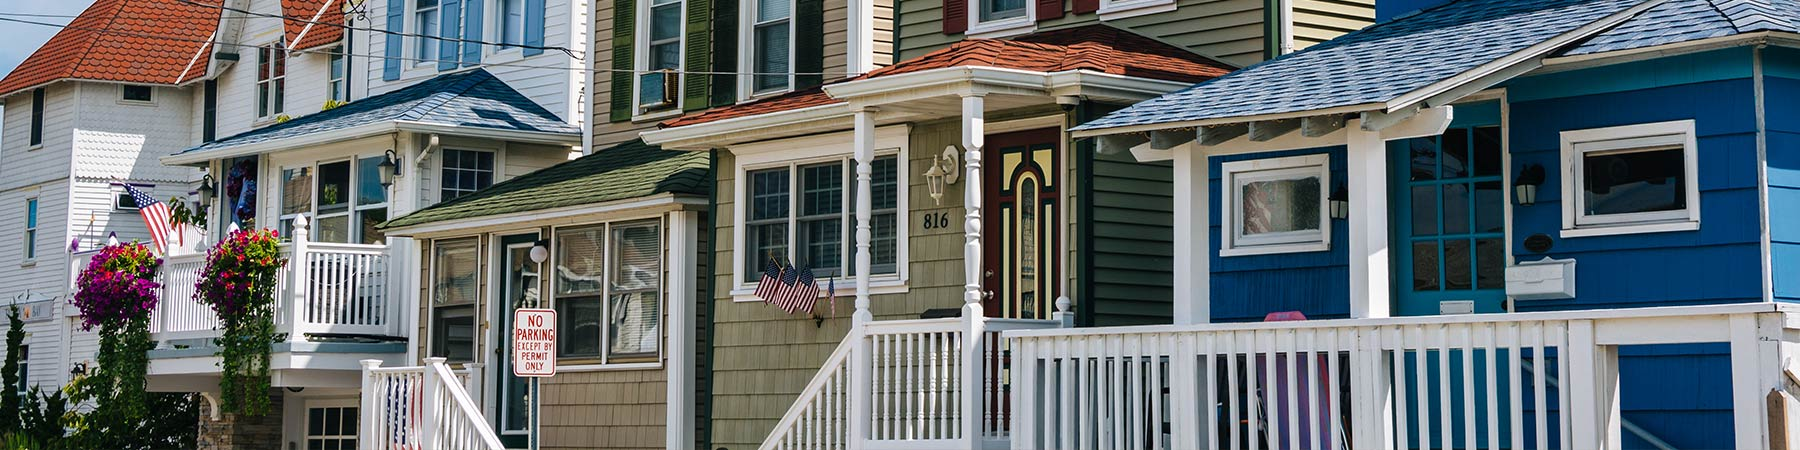 Home Insurance in Fort Mills, SC, Gastonia, Charlotte, Concord, NC